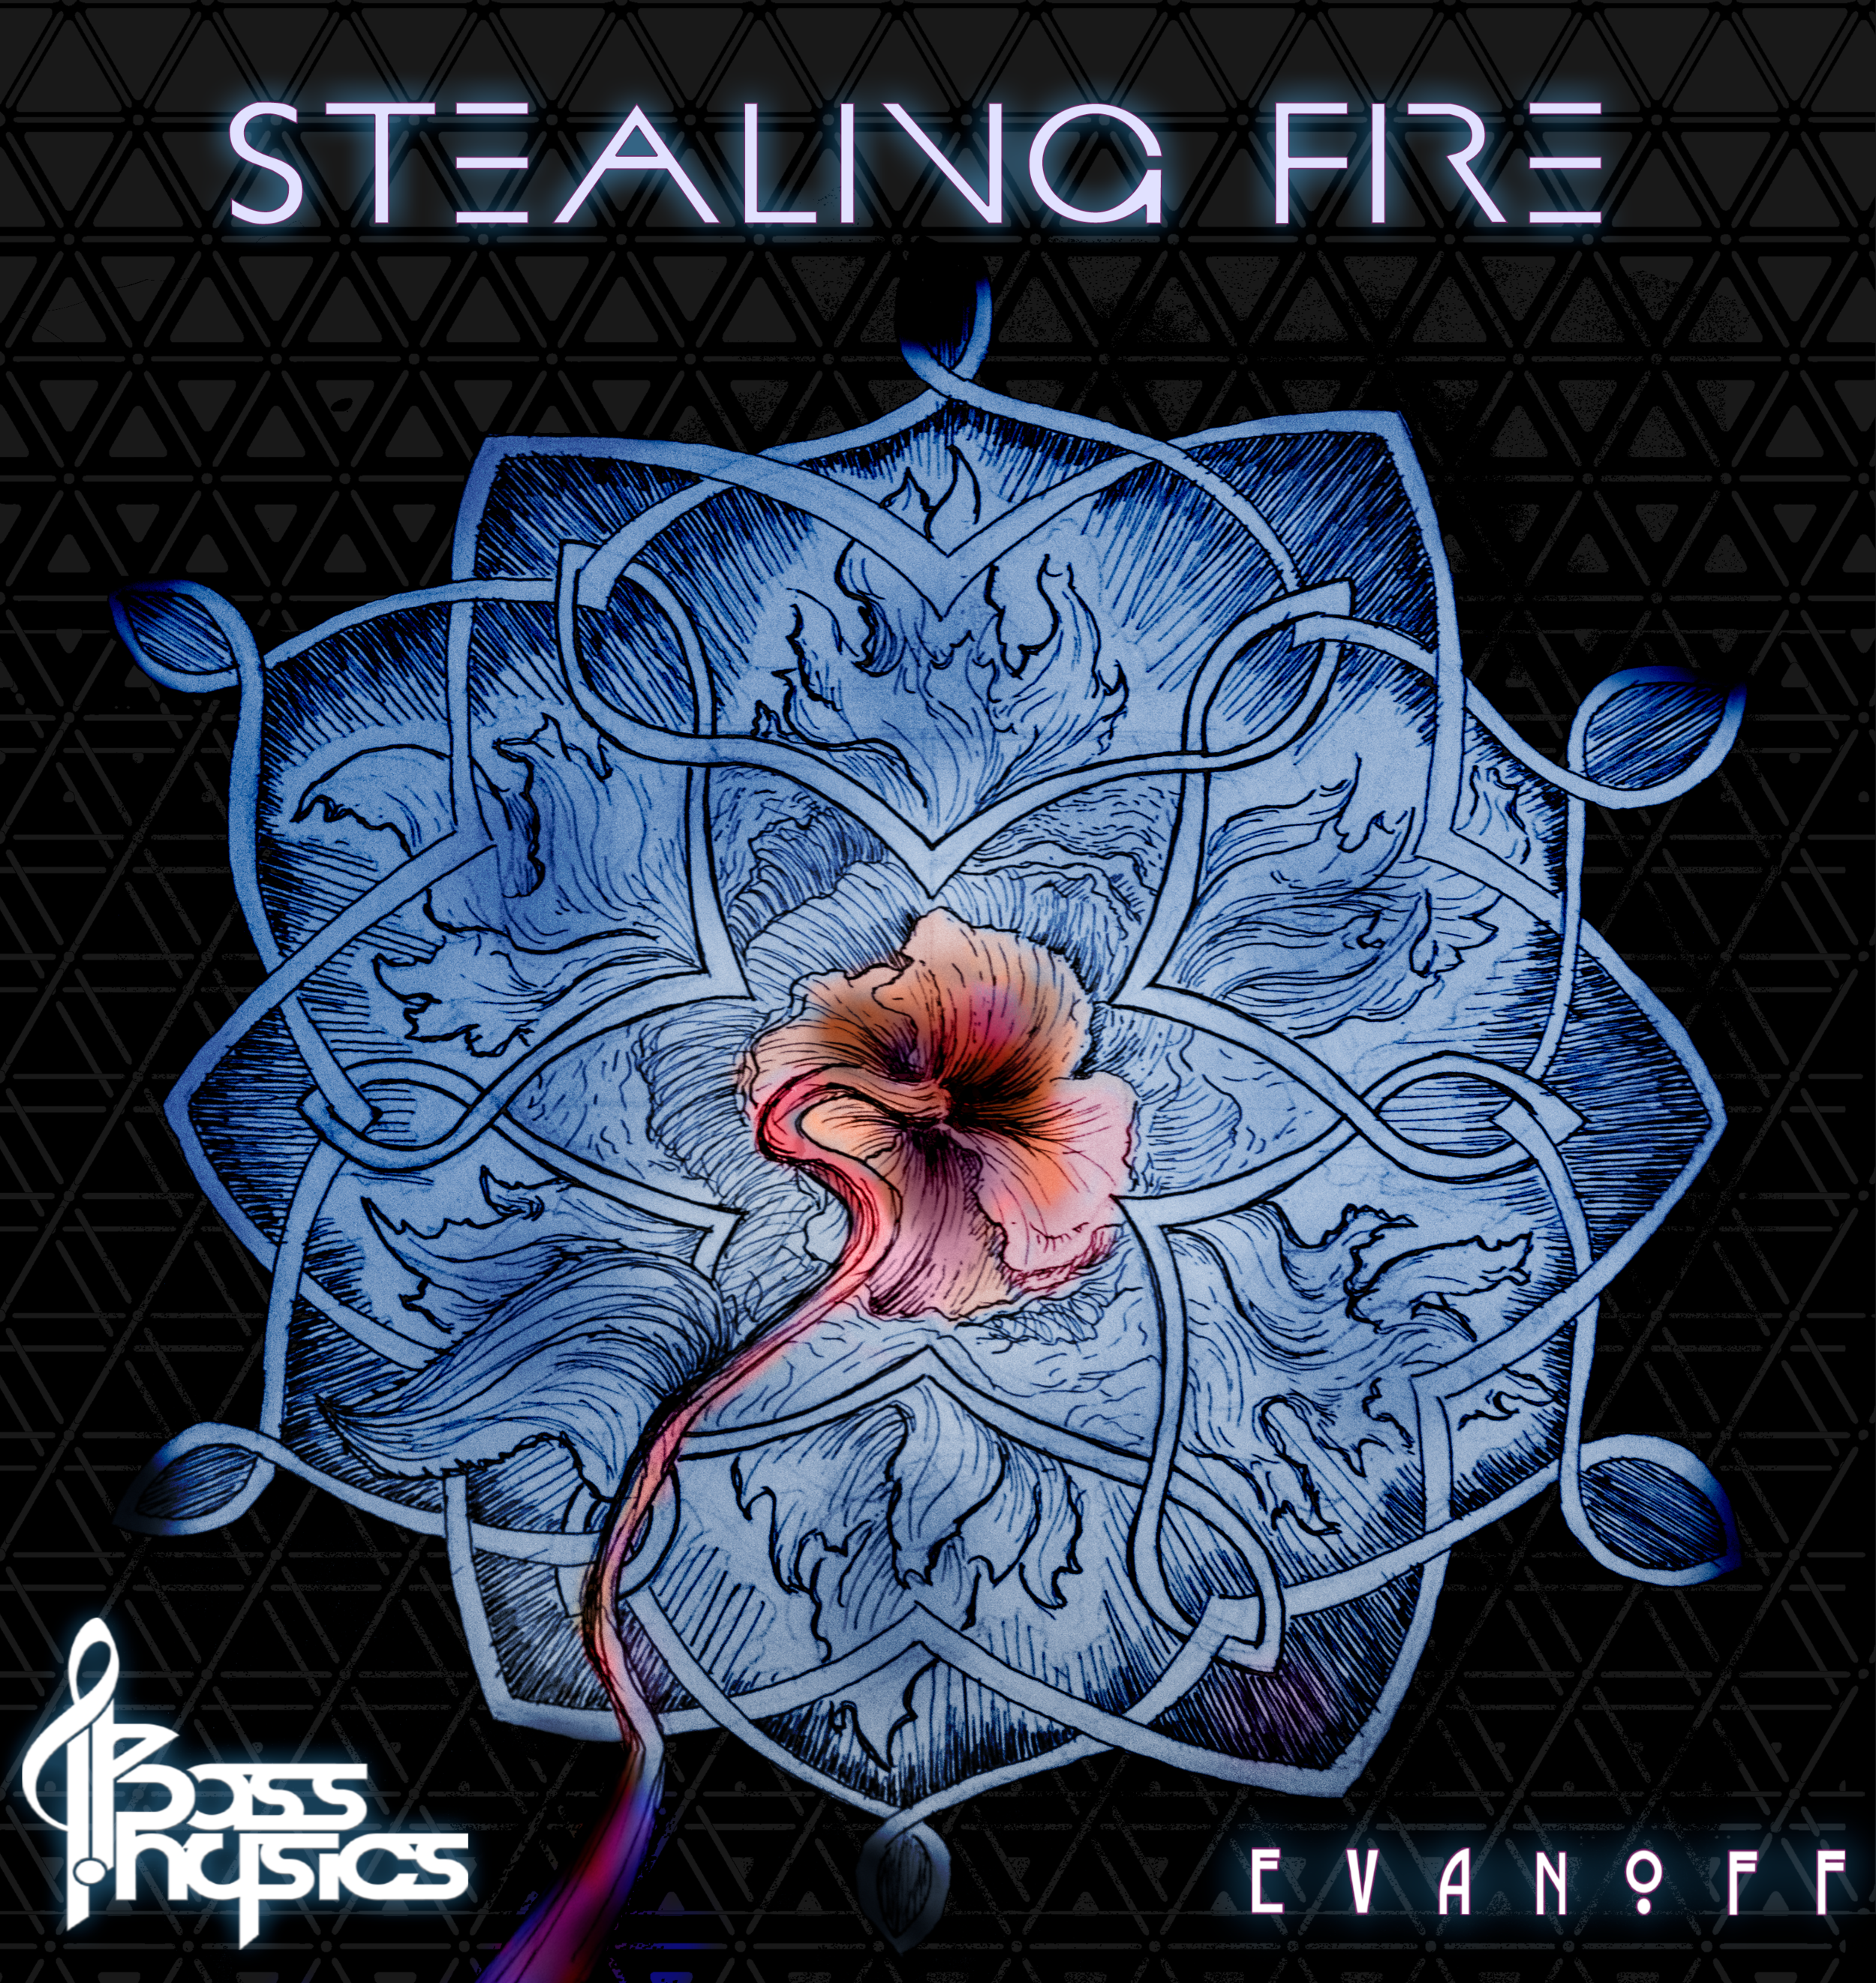 stealing fire Cover final3.png